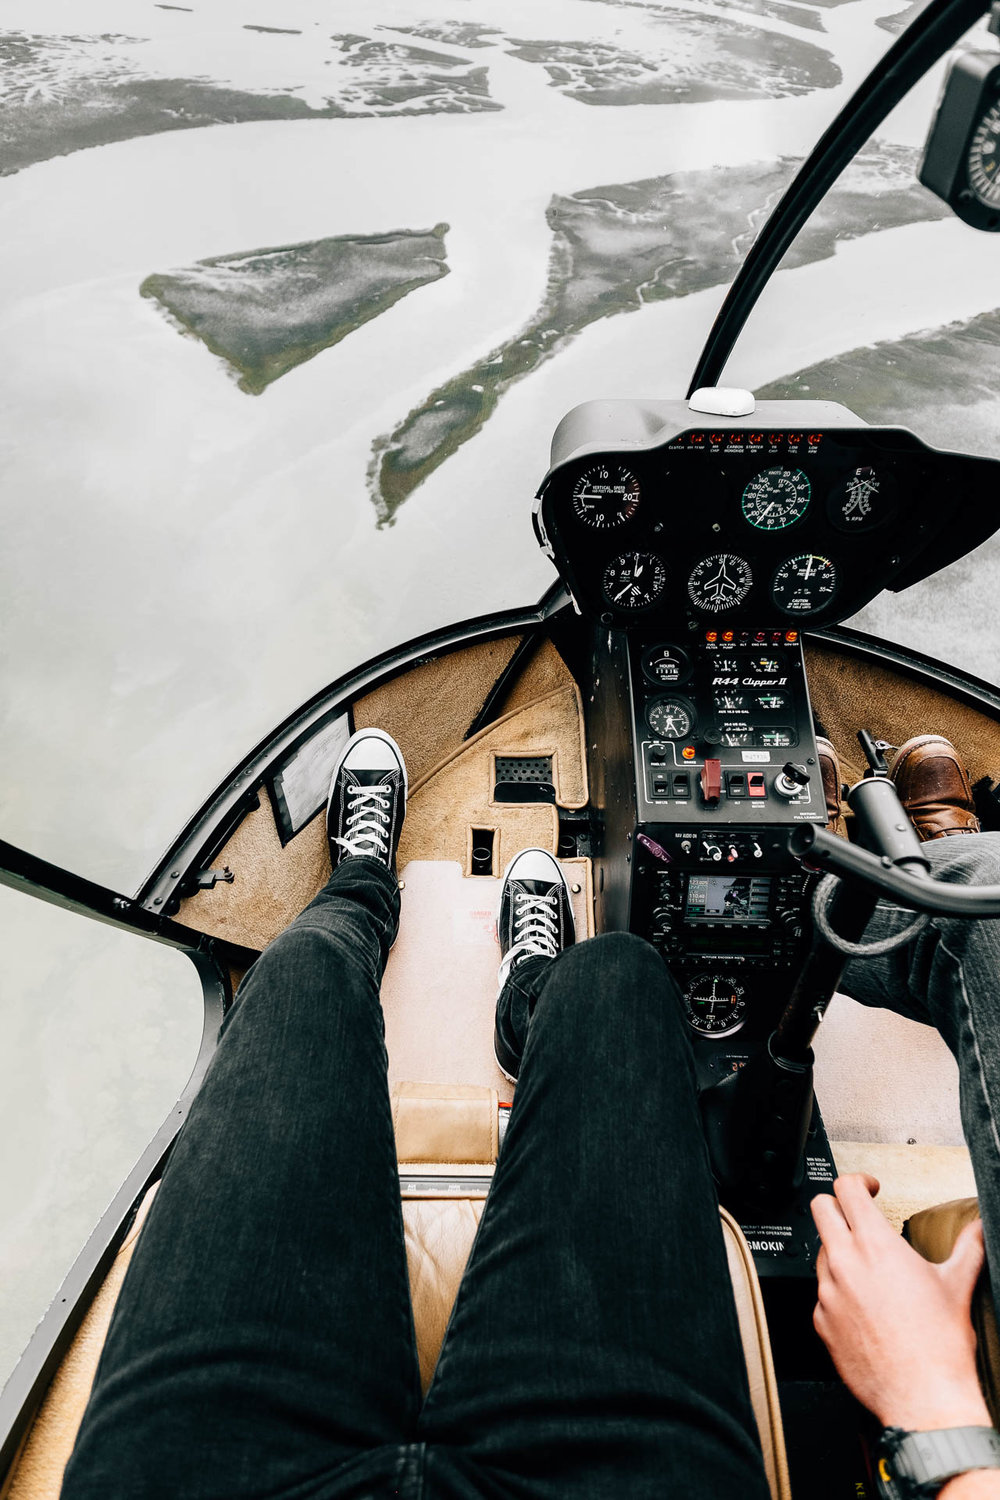 Inside the Helicopter